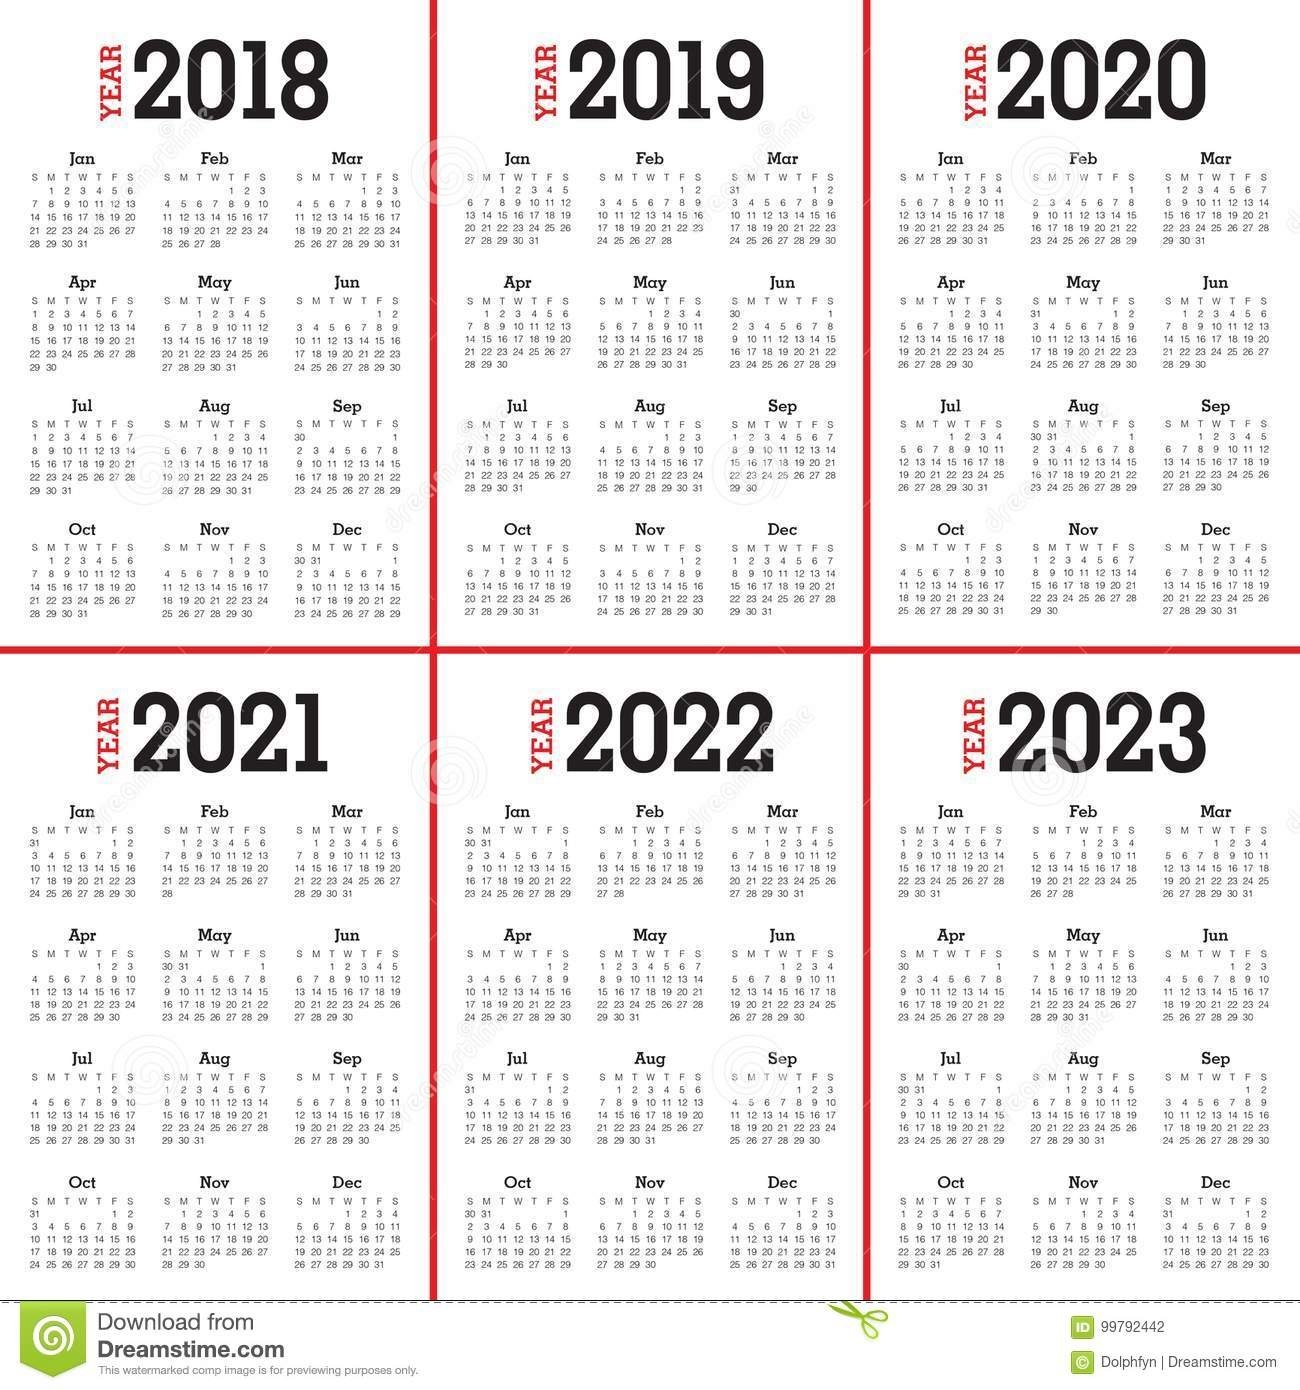 Six Year Calendar 2018 2019 2020 2021 2022 And 2023. Editorial 4 Year Calendar 2019 To 2022 Printable